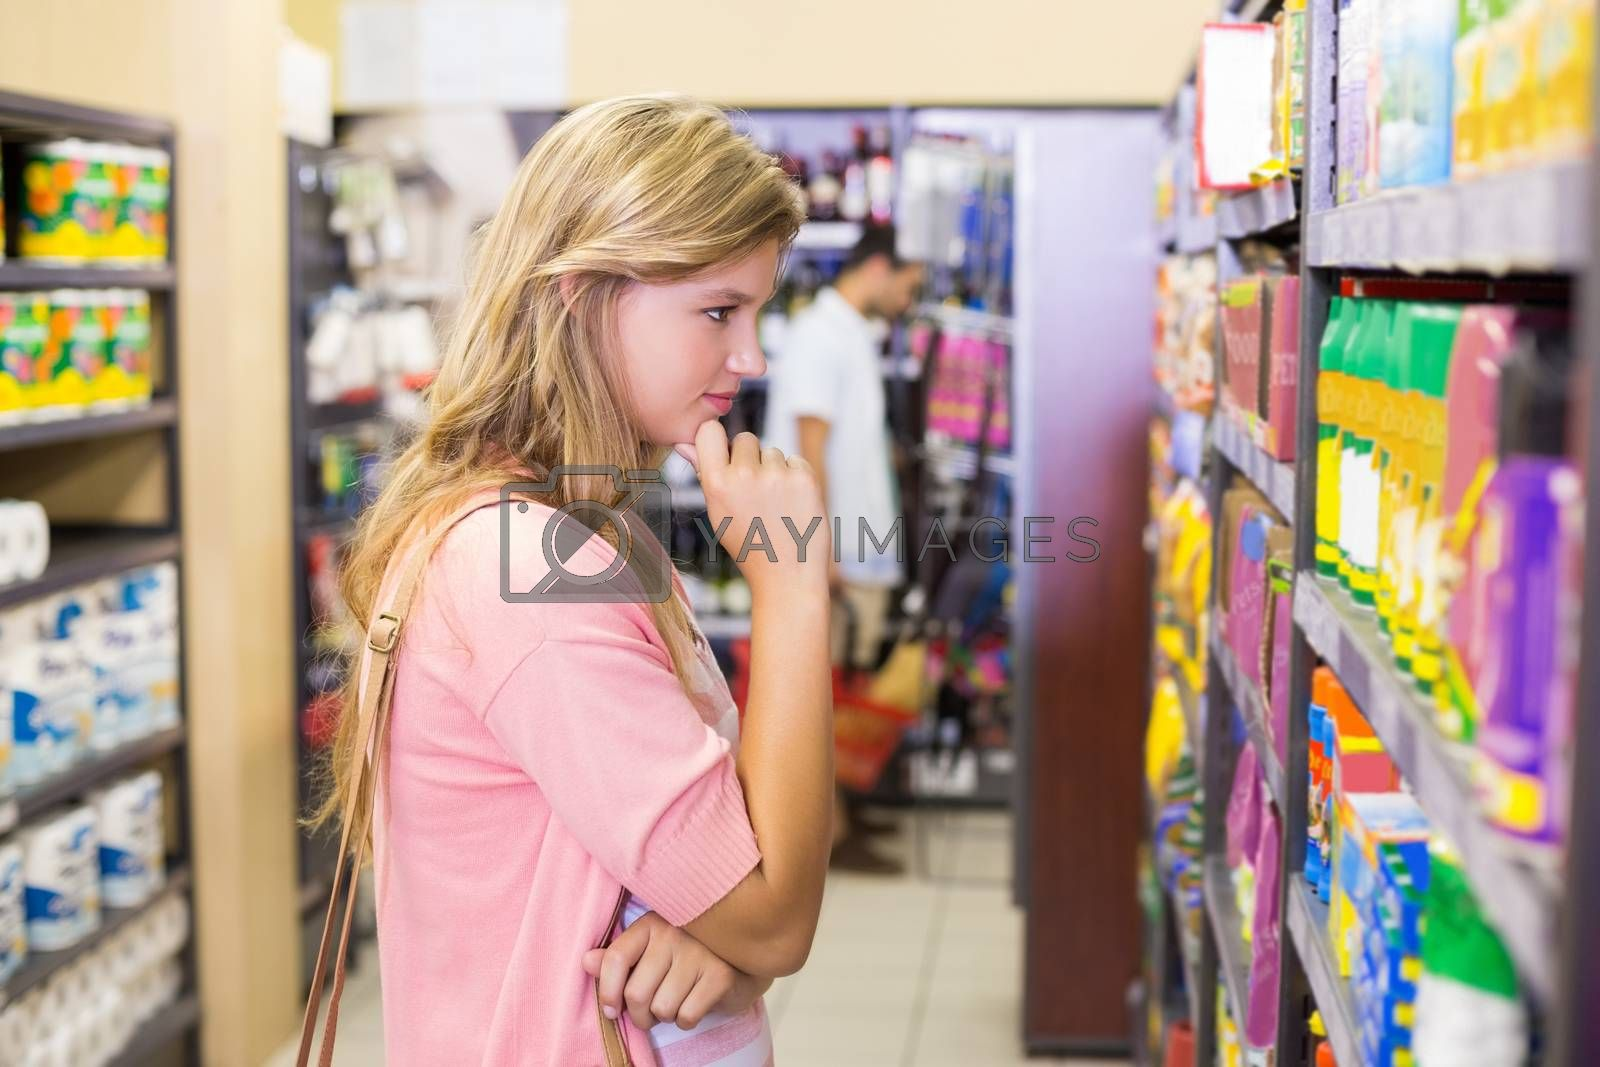 Royalty free image of Pretty blonde woman looking at shelf and thinking  by Wavebreakmedia